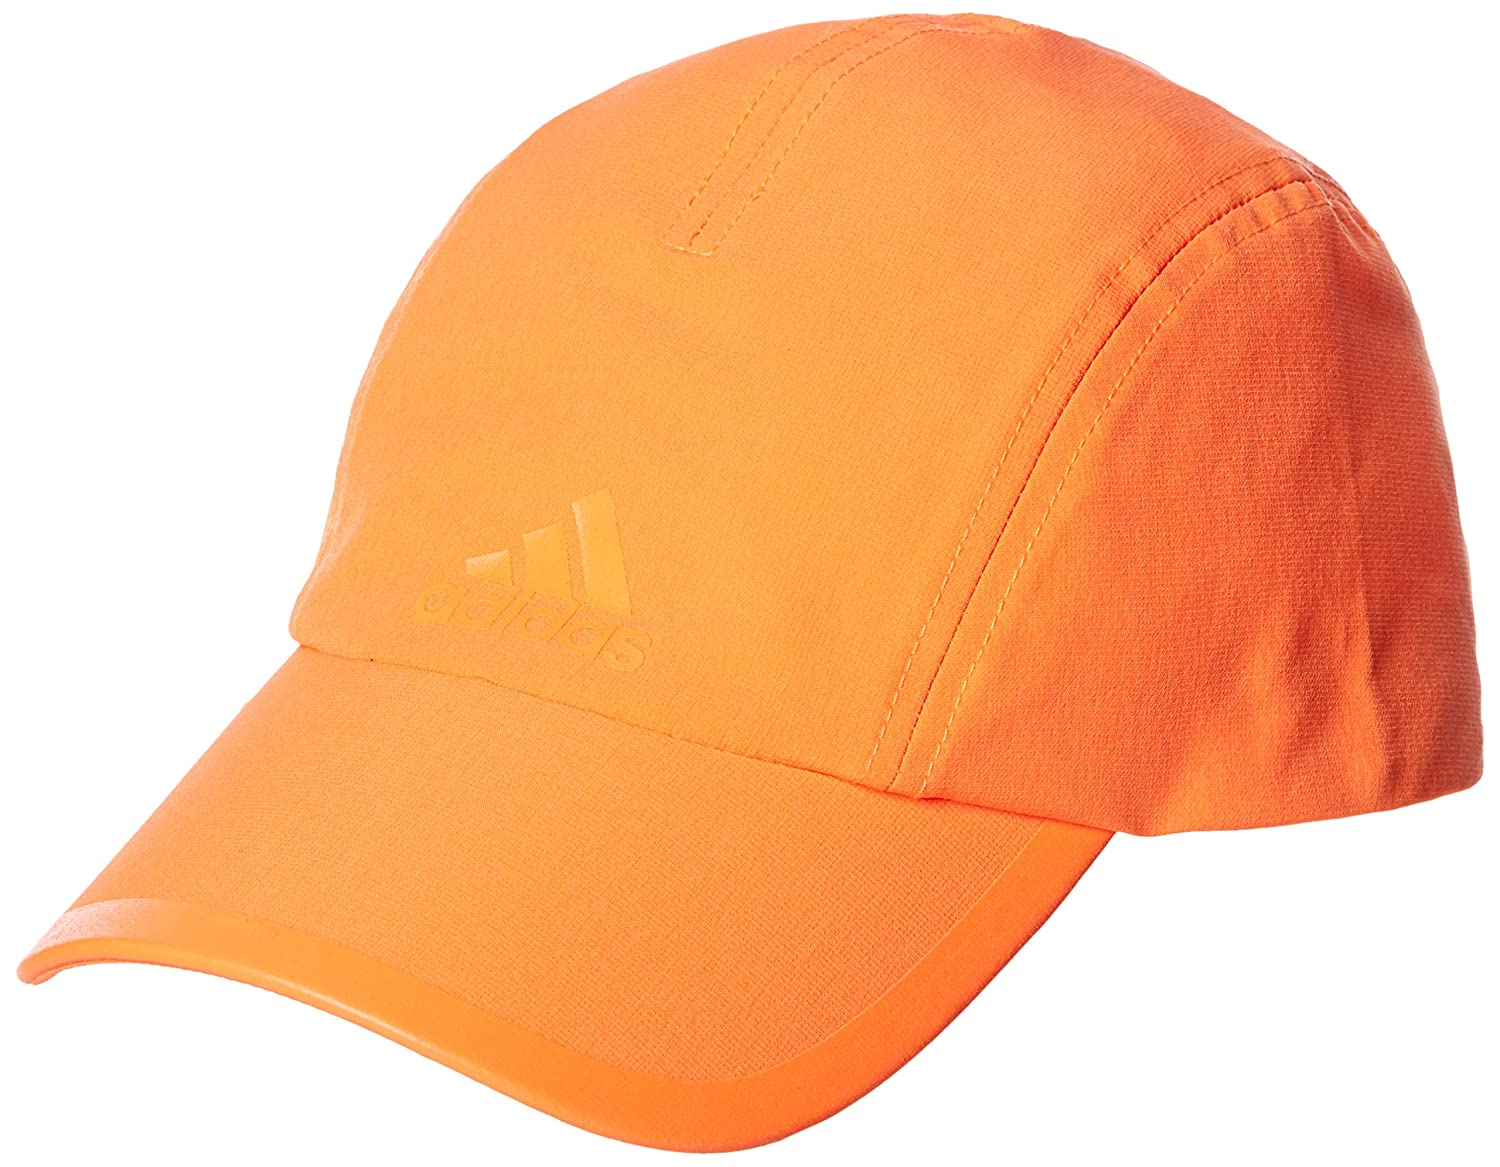 Adidas Climalite Orange Cap Baseball Headwear R96 Running Hat Reflective Unisex